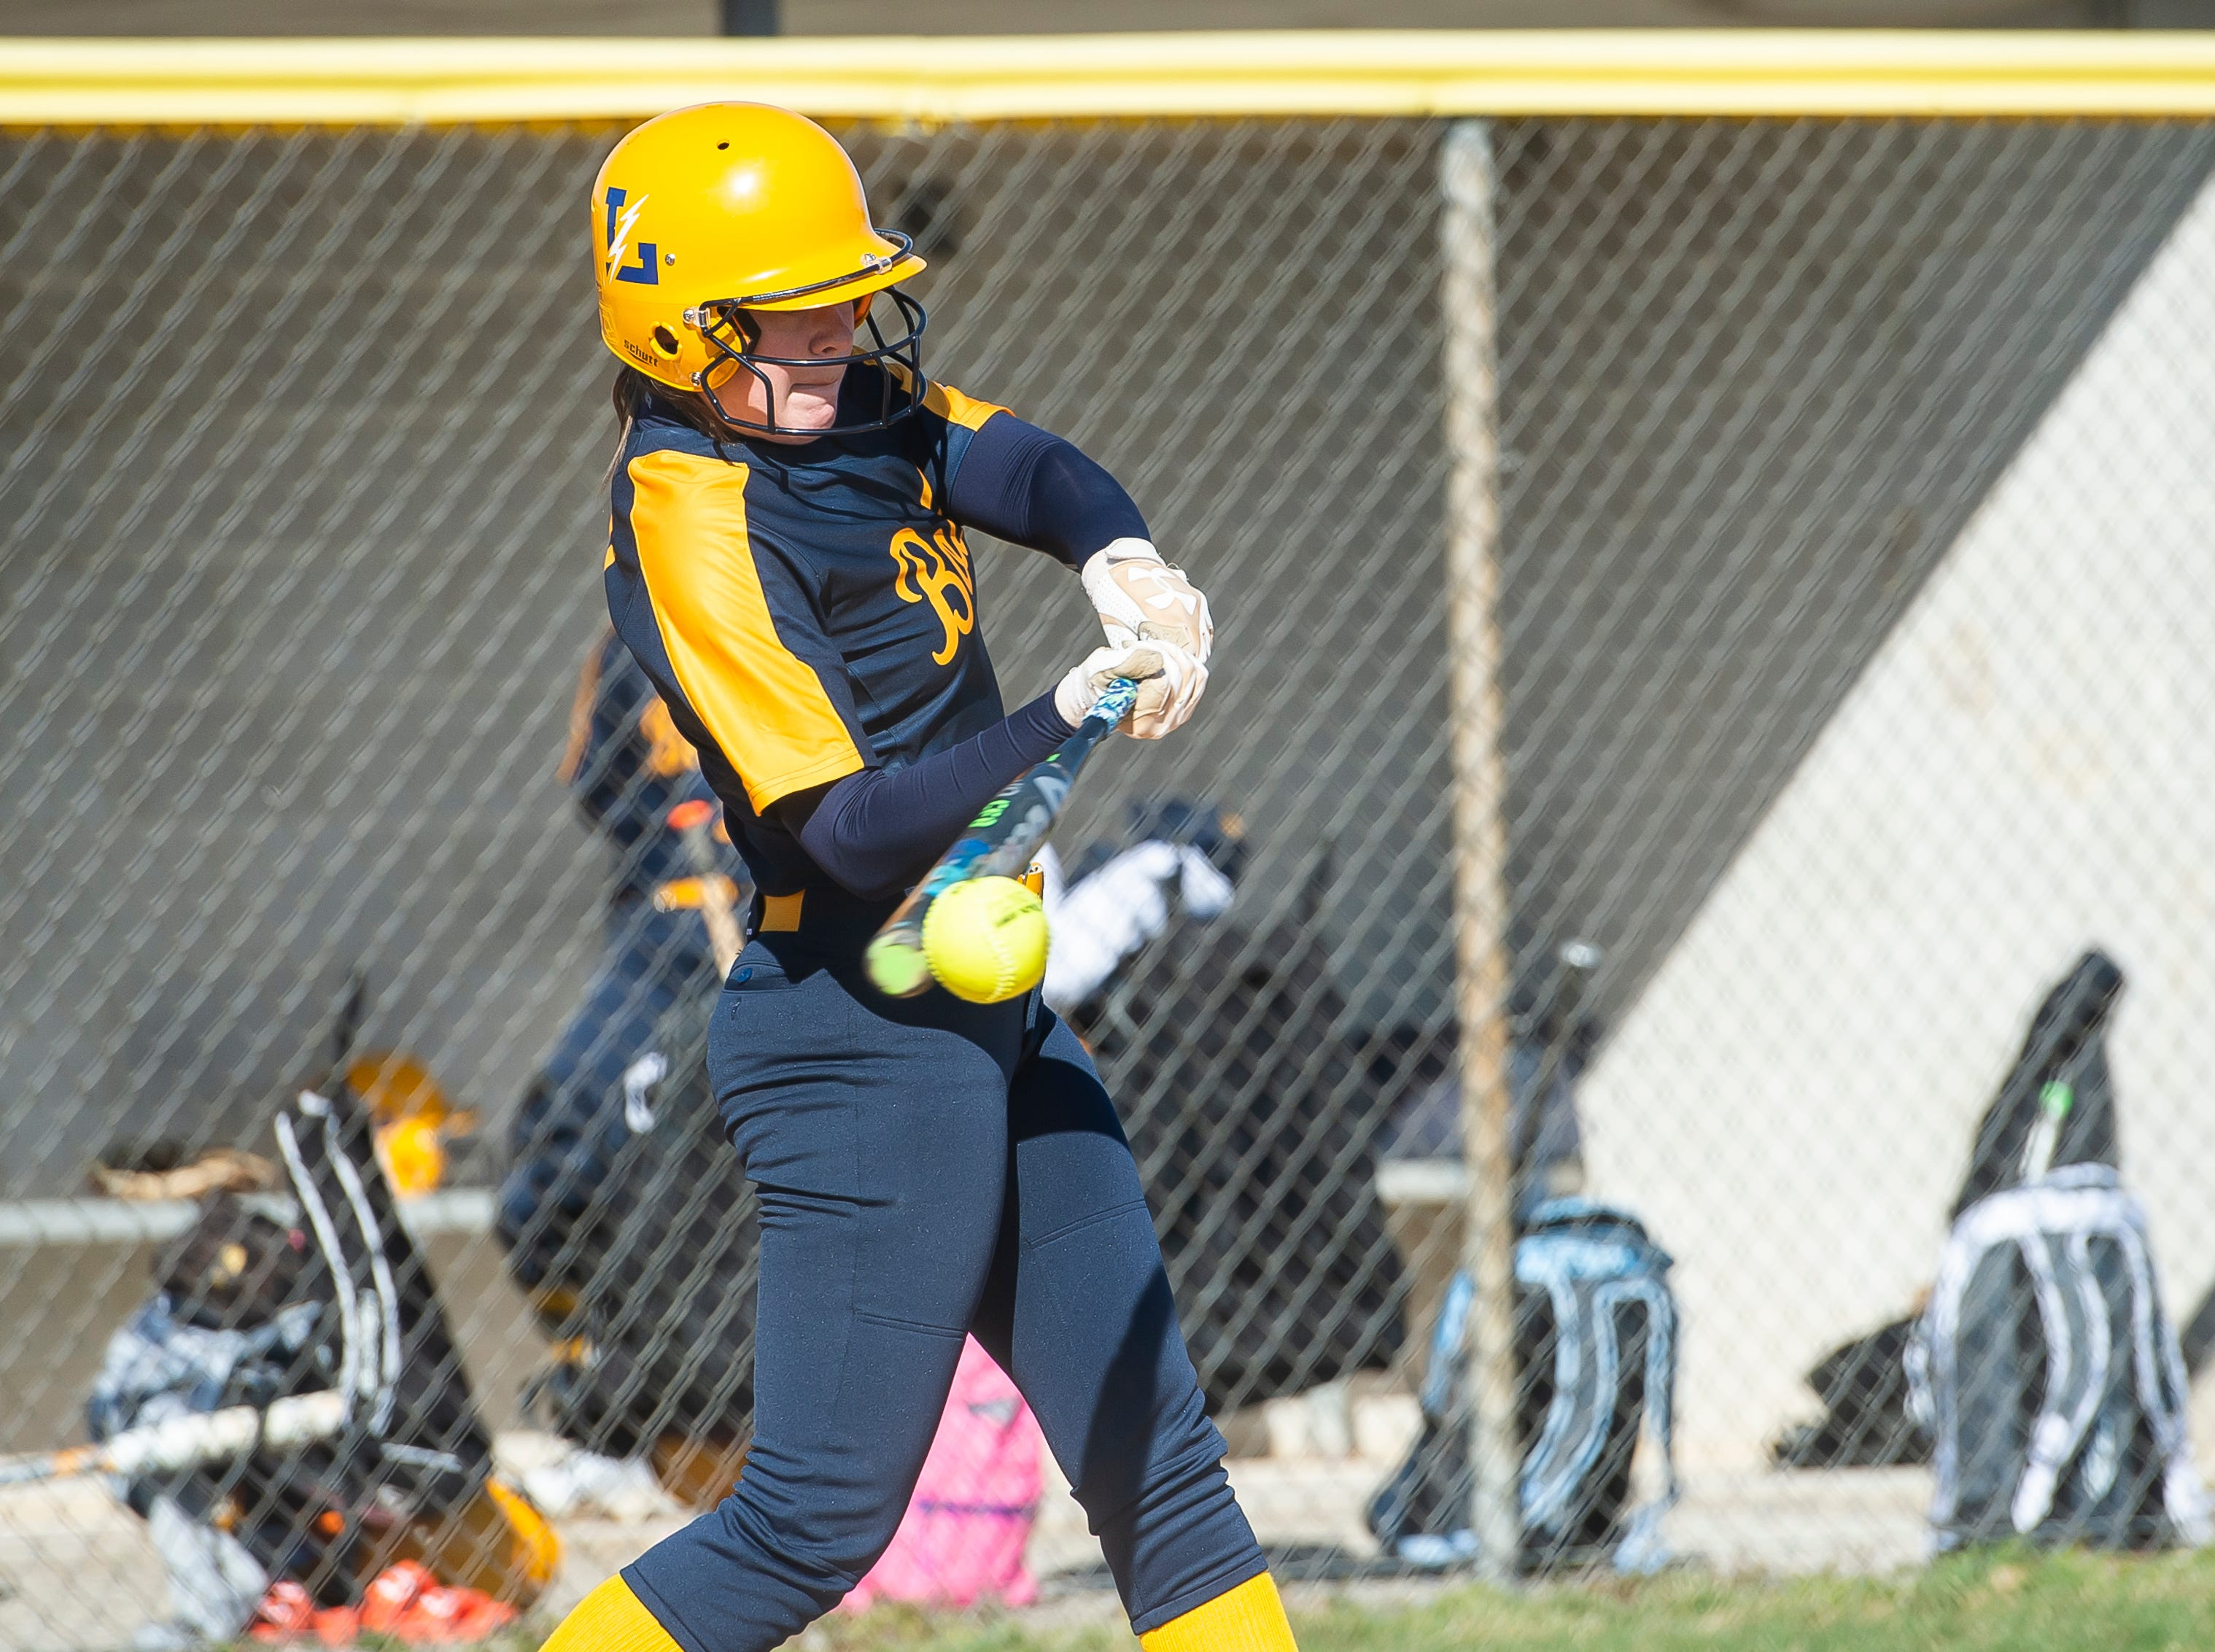 Littlestown's Kacie Frock connects with the ball during a YAIAA softball game against Gettysburg on Monday, April 1, 2019. The Bolts won 10-4.